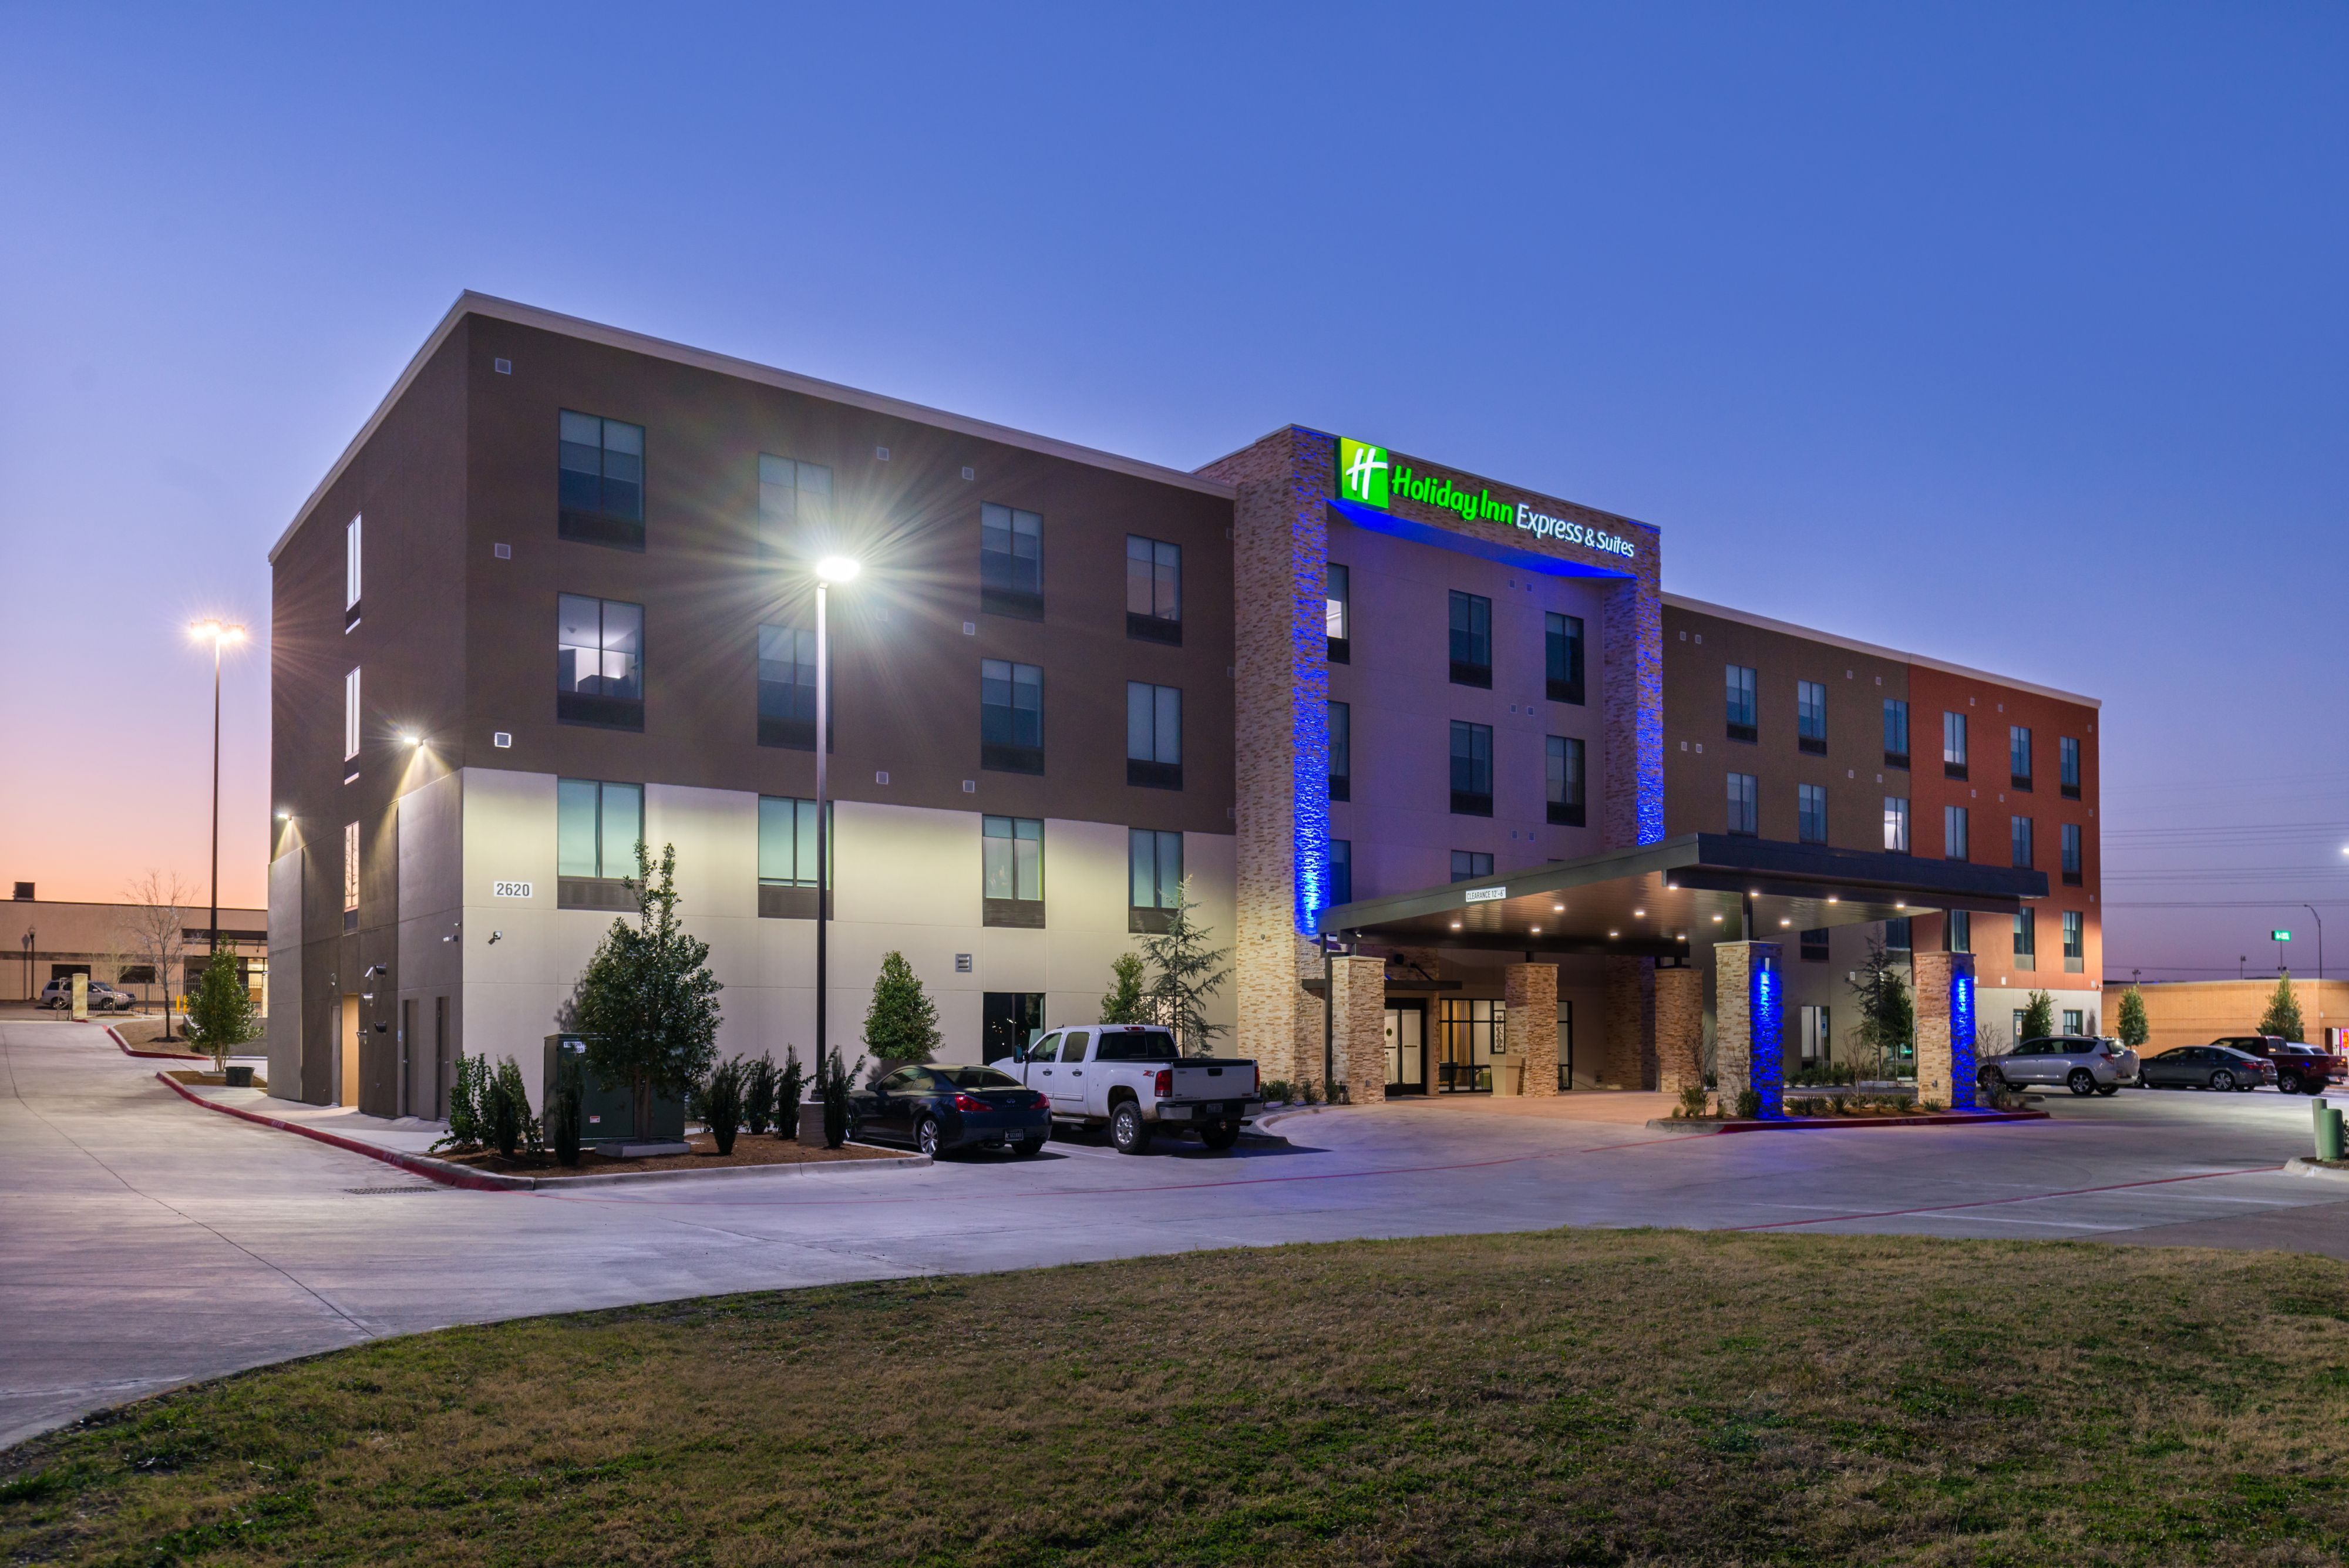 Holiday Inn Express Amp Suites Fort Worth North Northlake